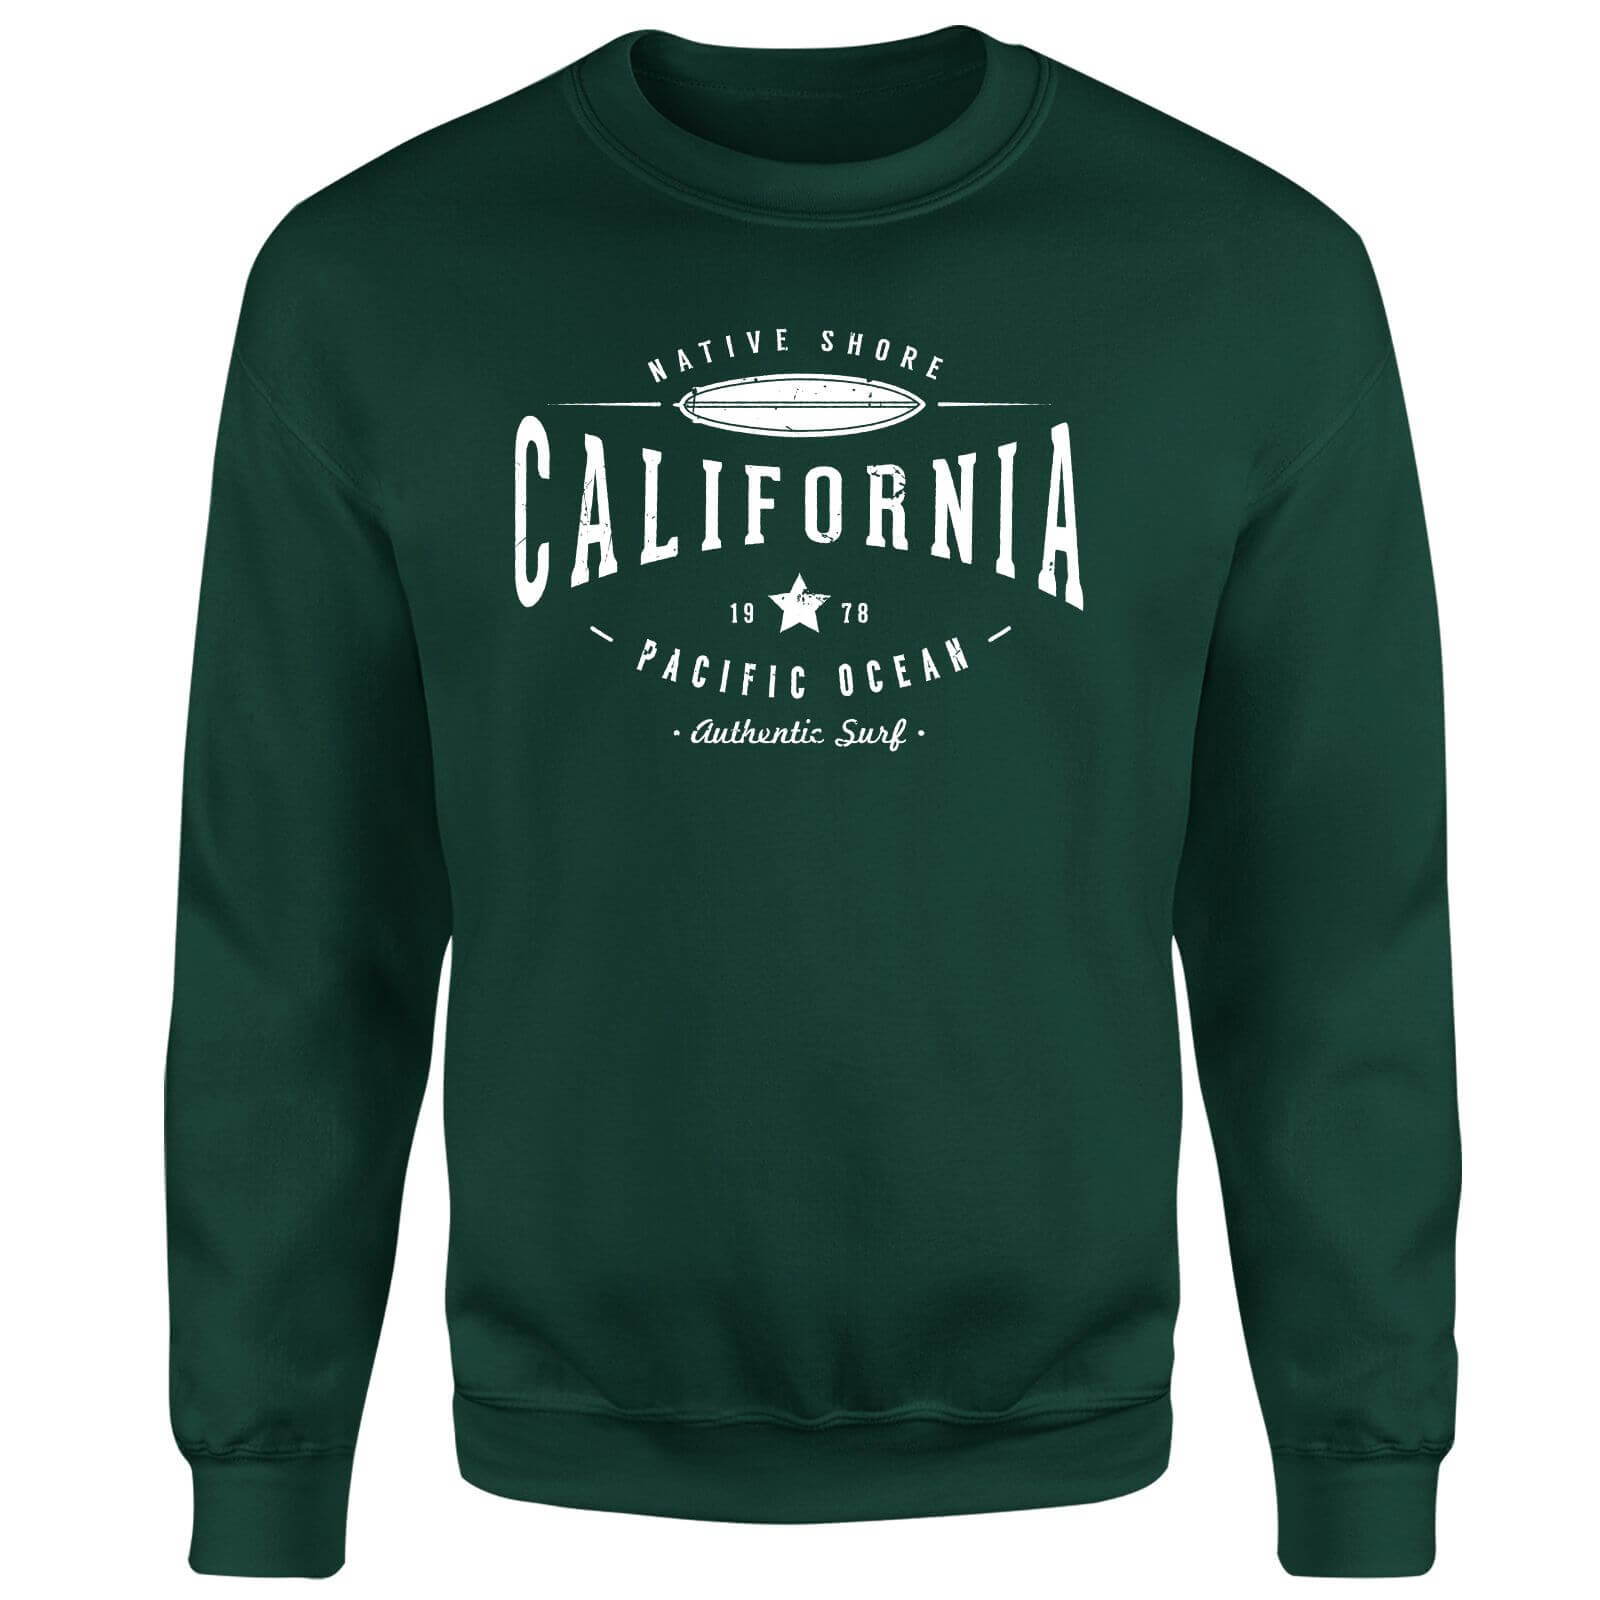 Native Shore California Sweatshirt - Forest Green